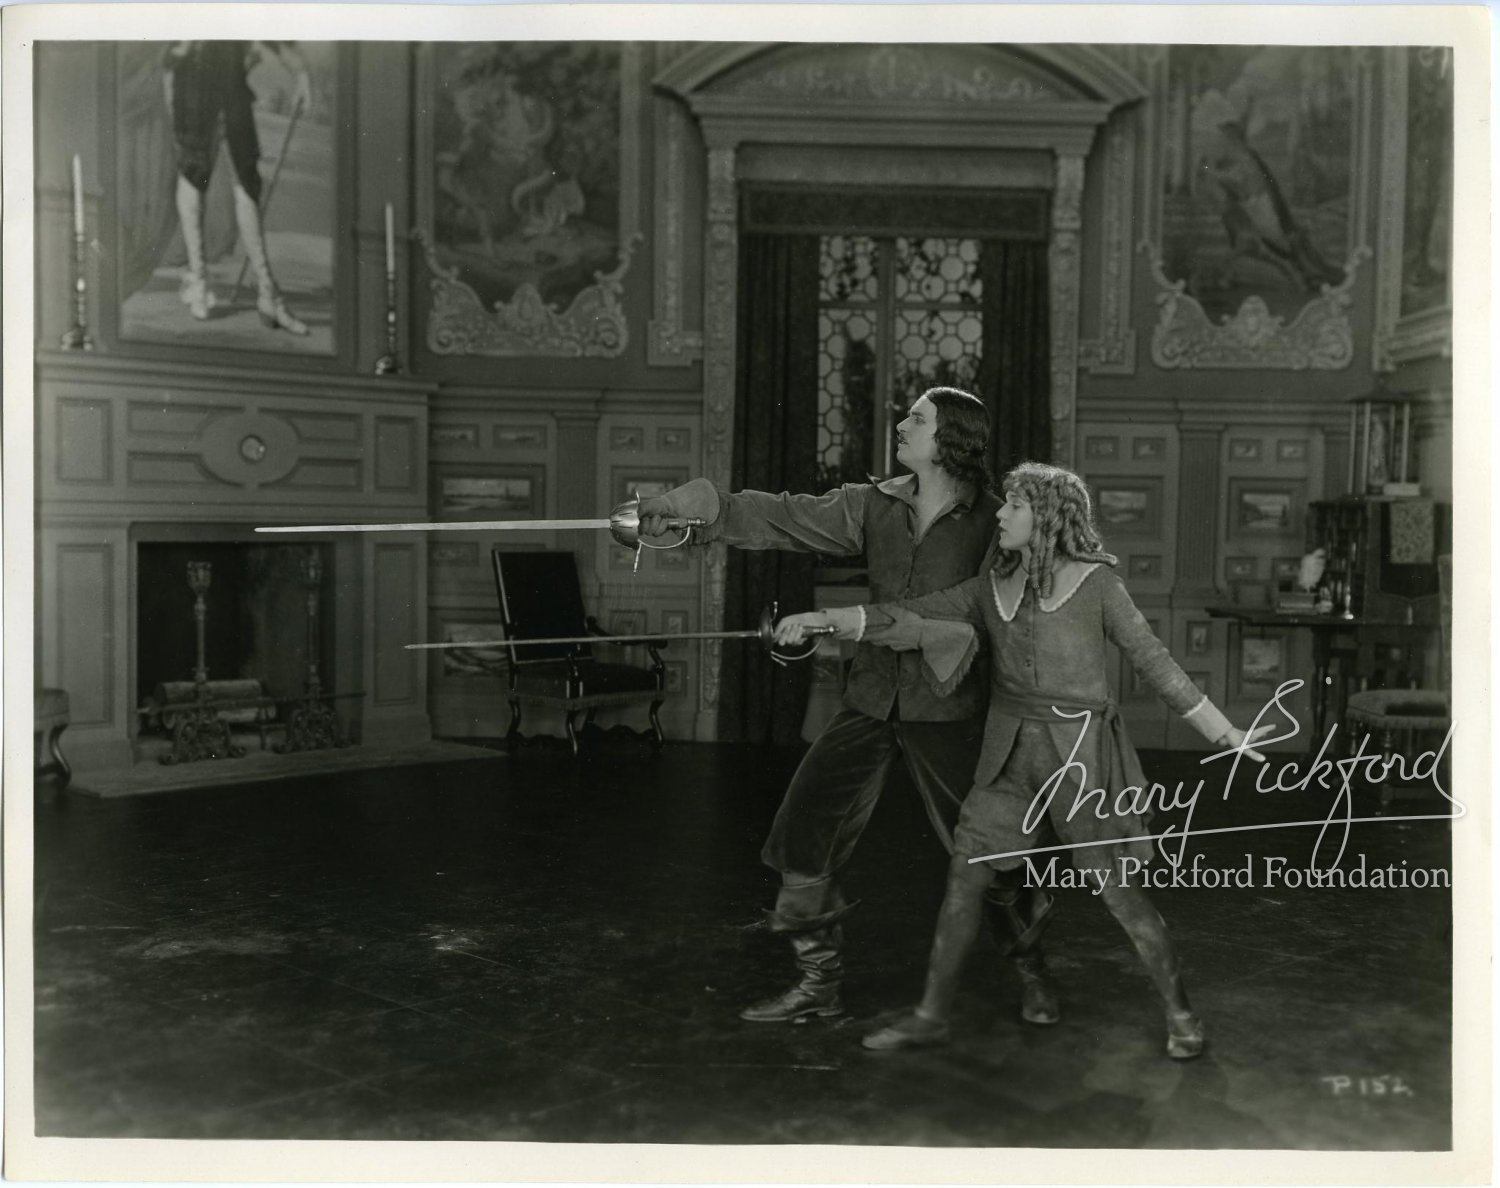 Behind the Scenes - Mary Pickford Foundation